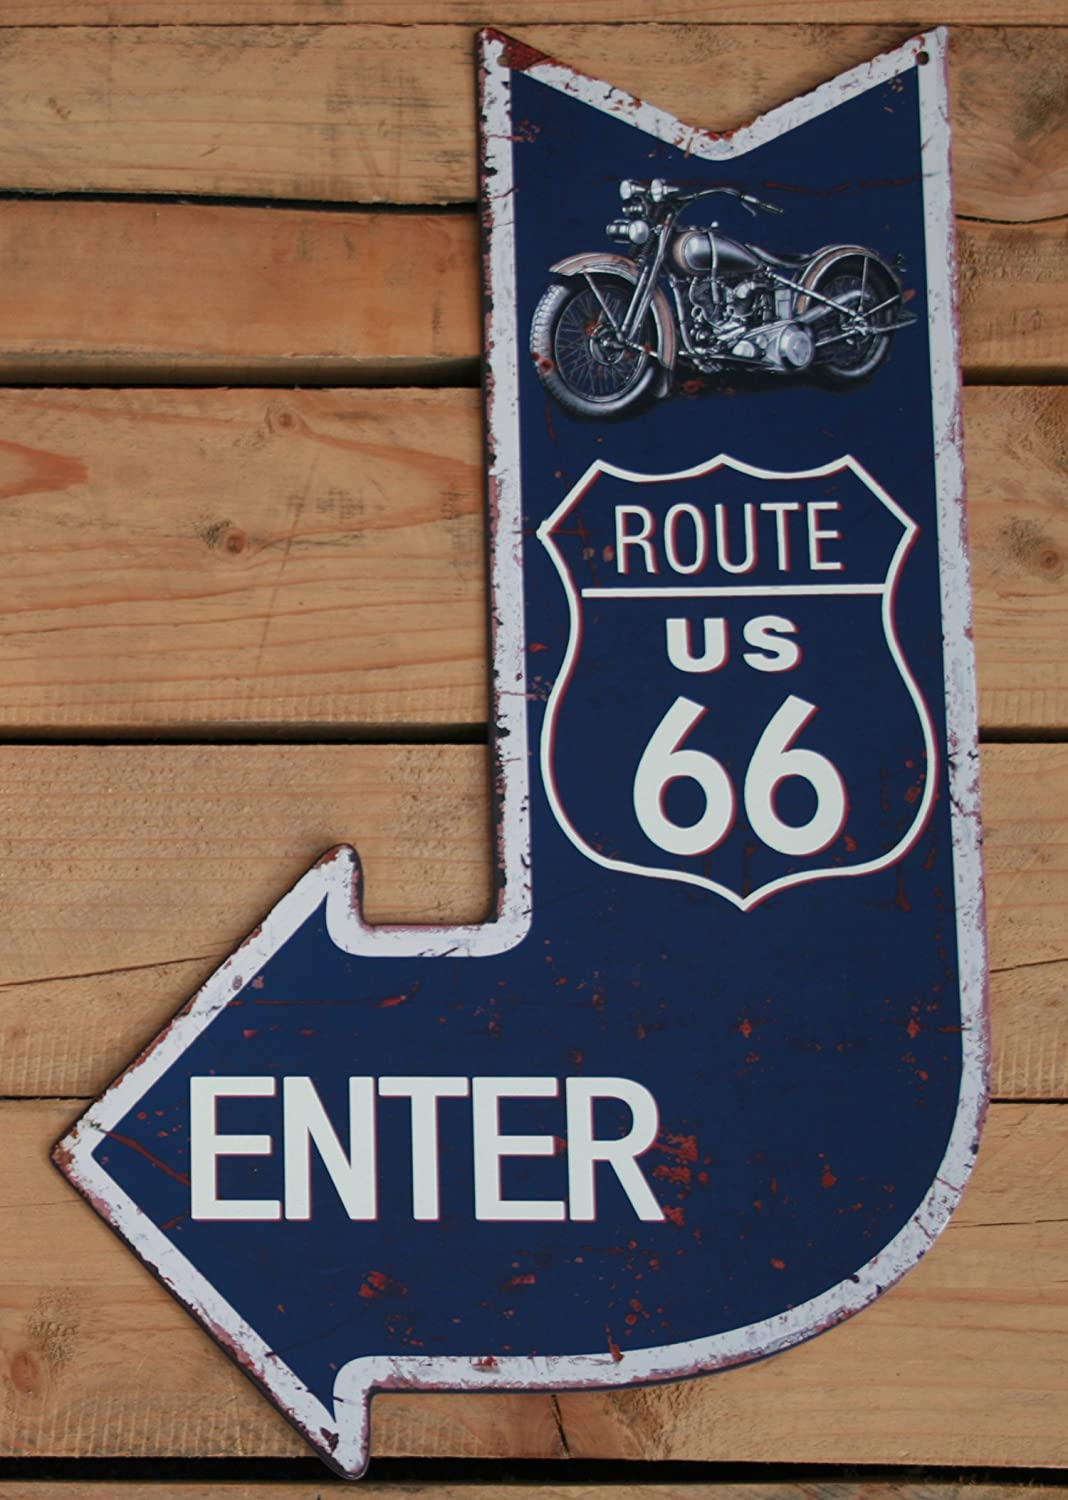 Moritz Cartel de Chapa Cartel Enterprise Route US 66 ...